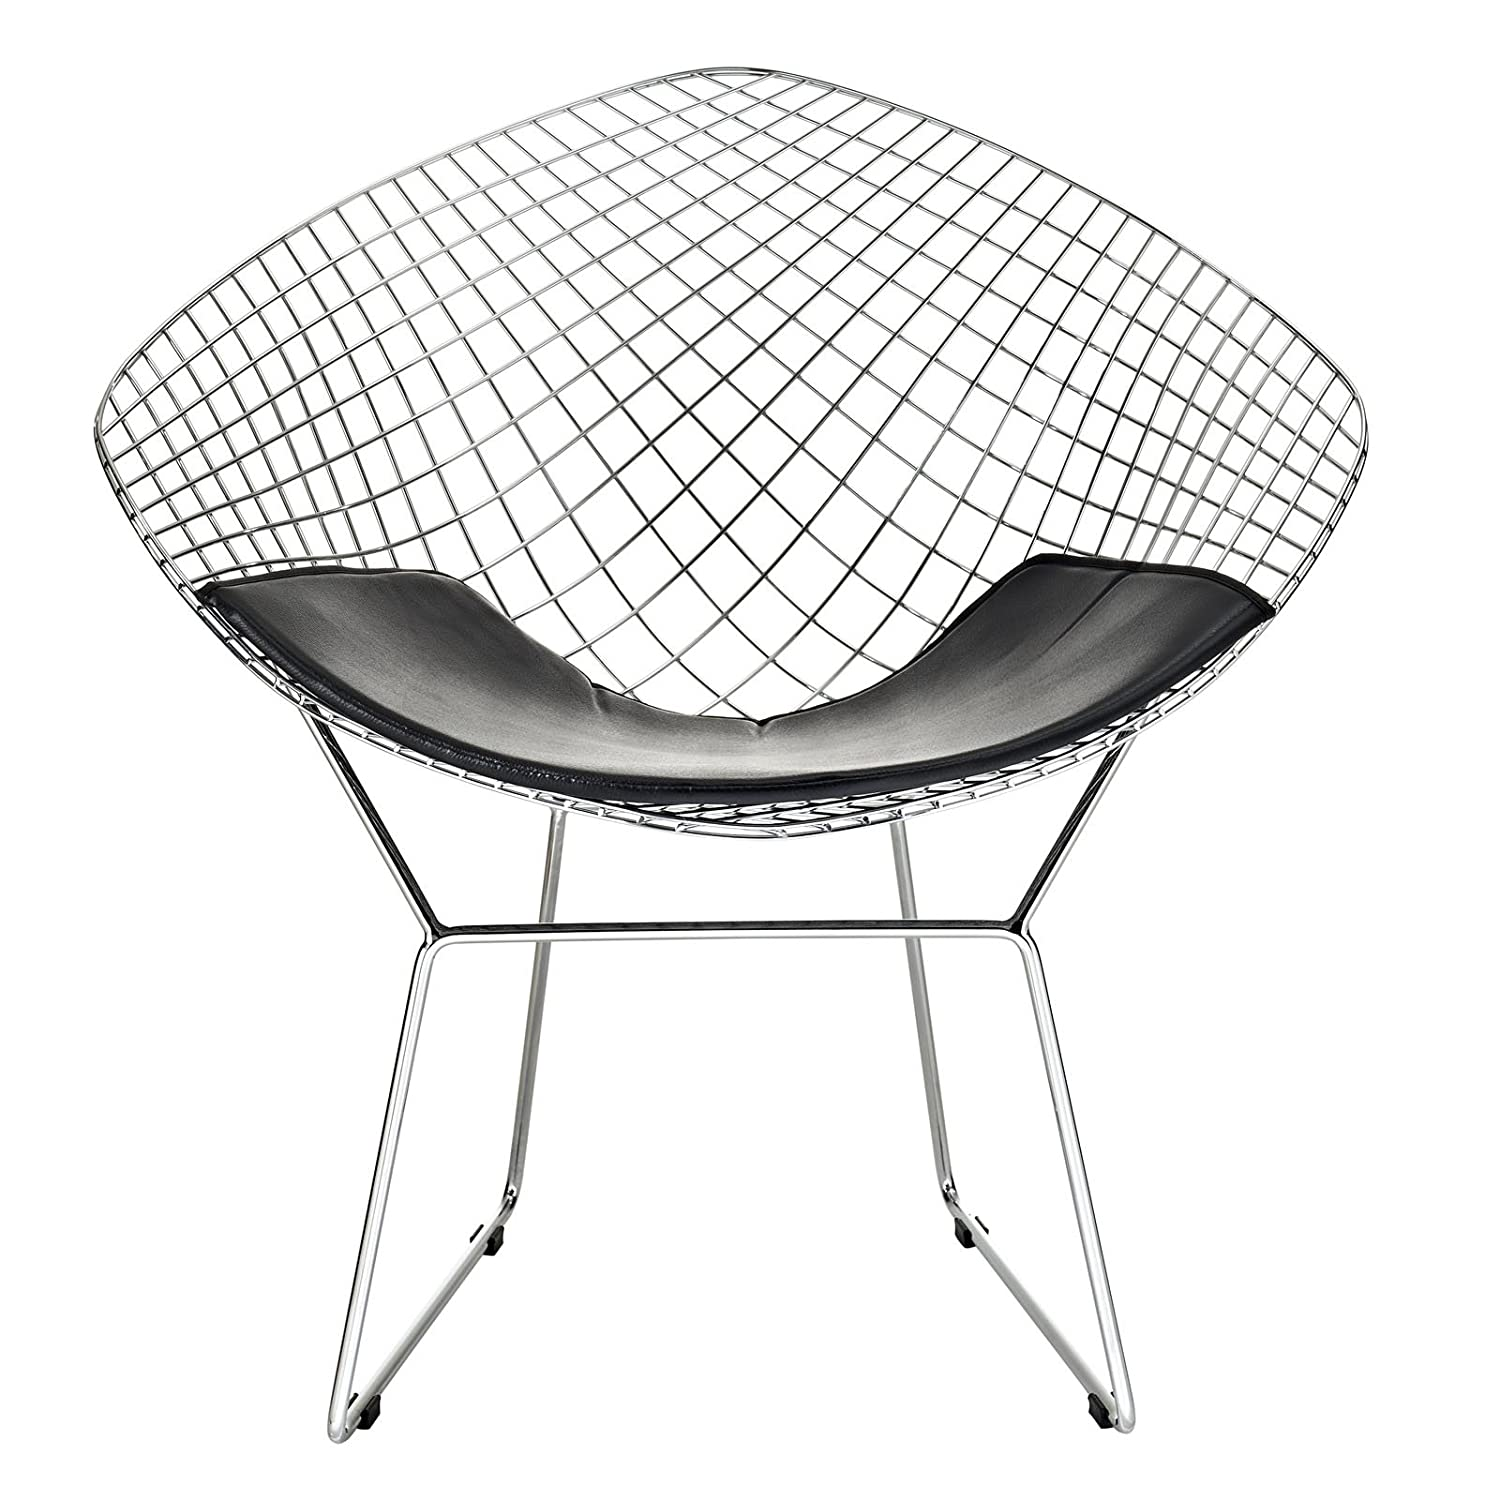 Bertoia diamond chair black - Bertoia Diamond Chair Black 7